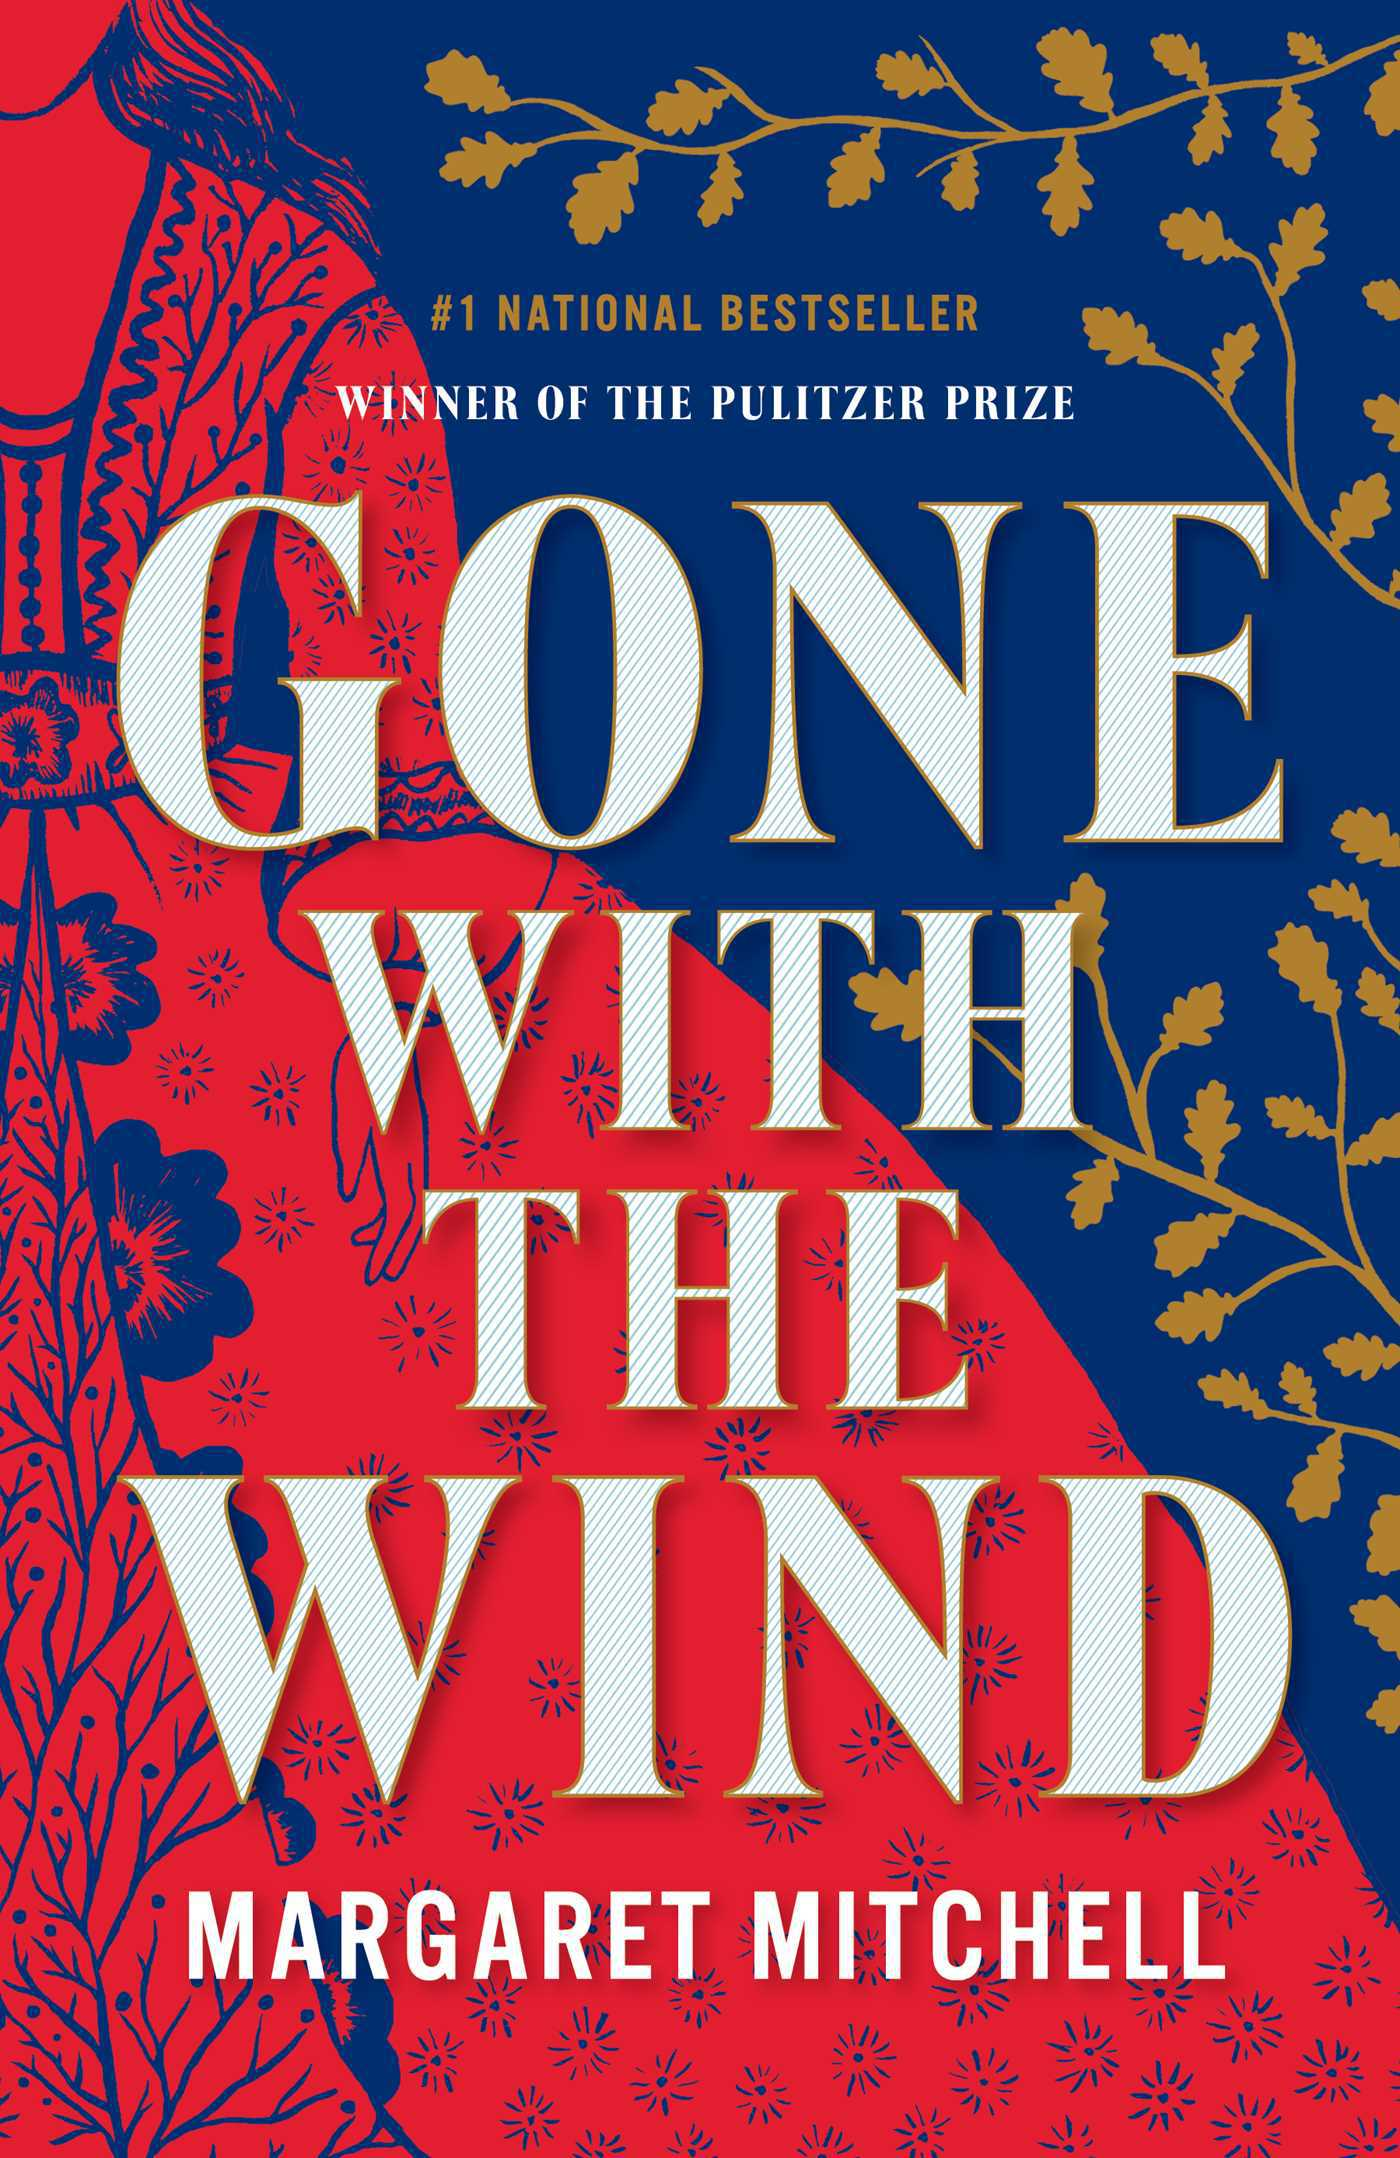 gone with the wind by margaret mitchell.jpg